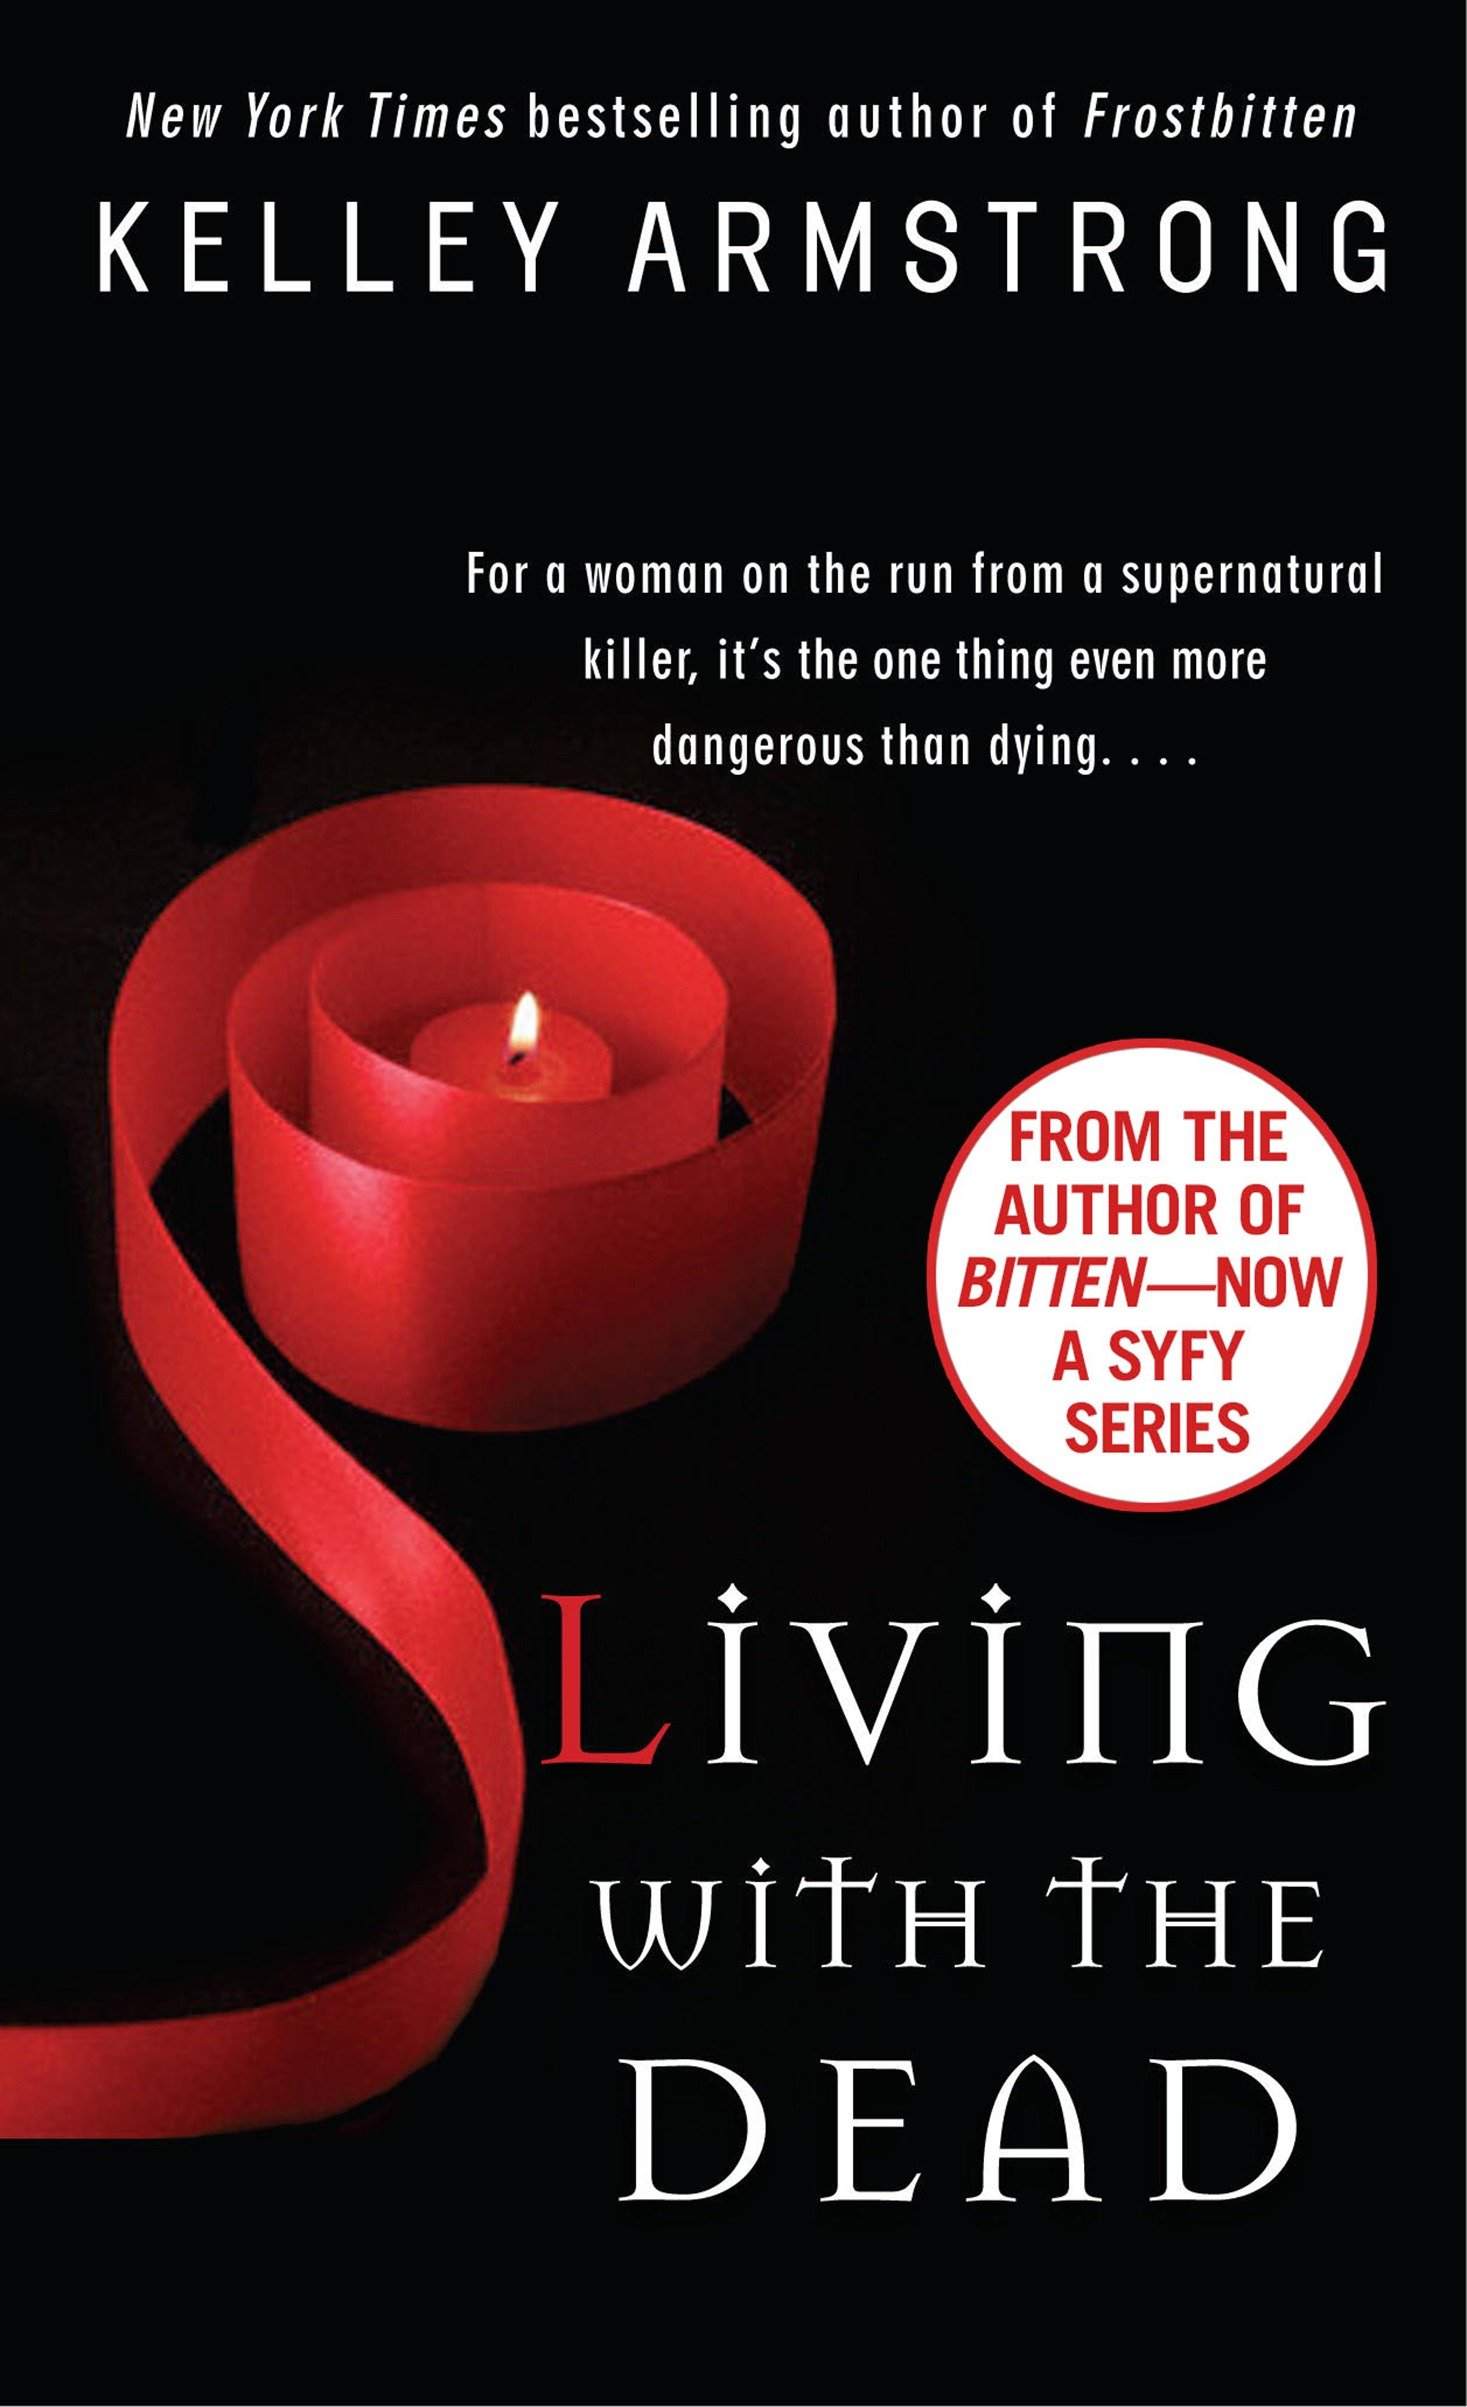 Living with the dead cover image